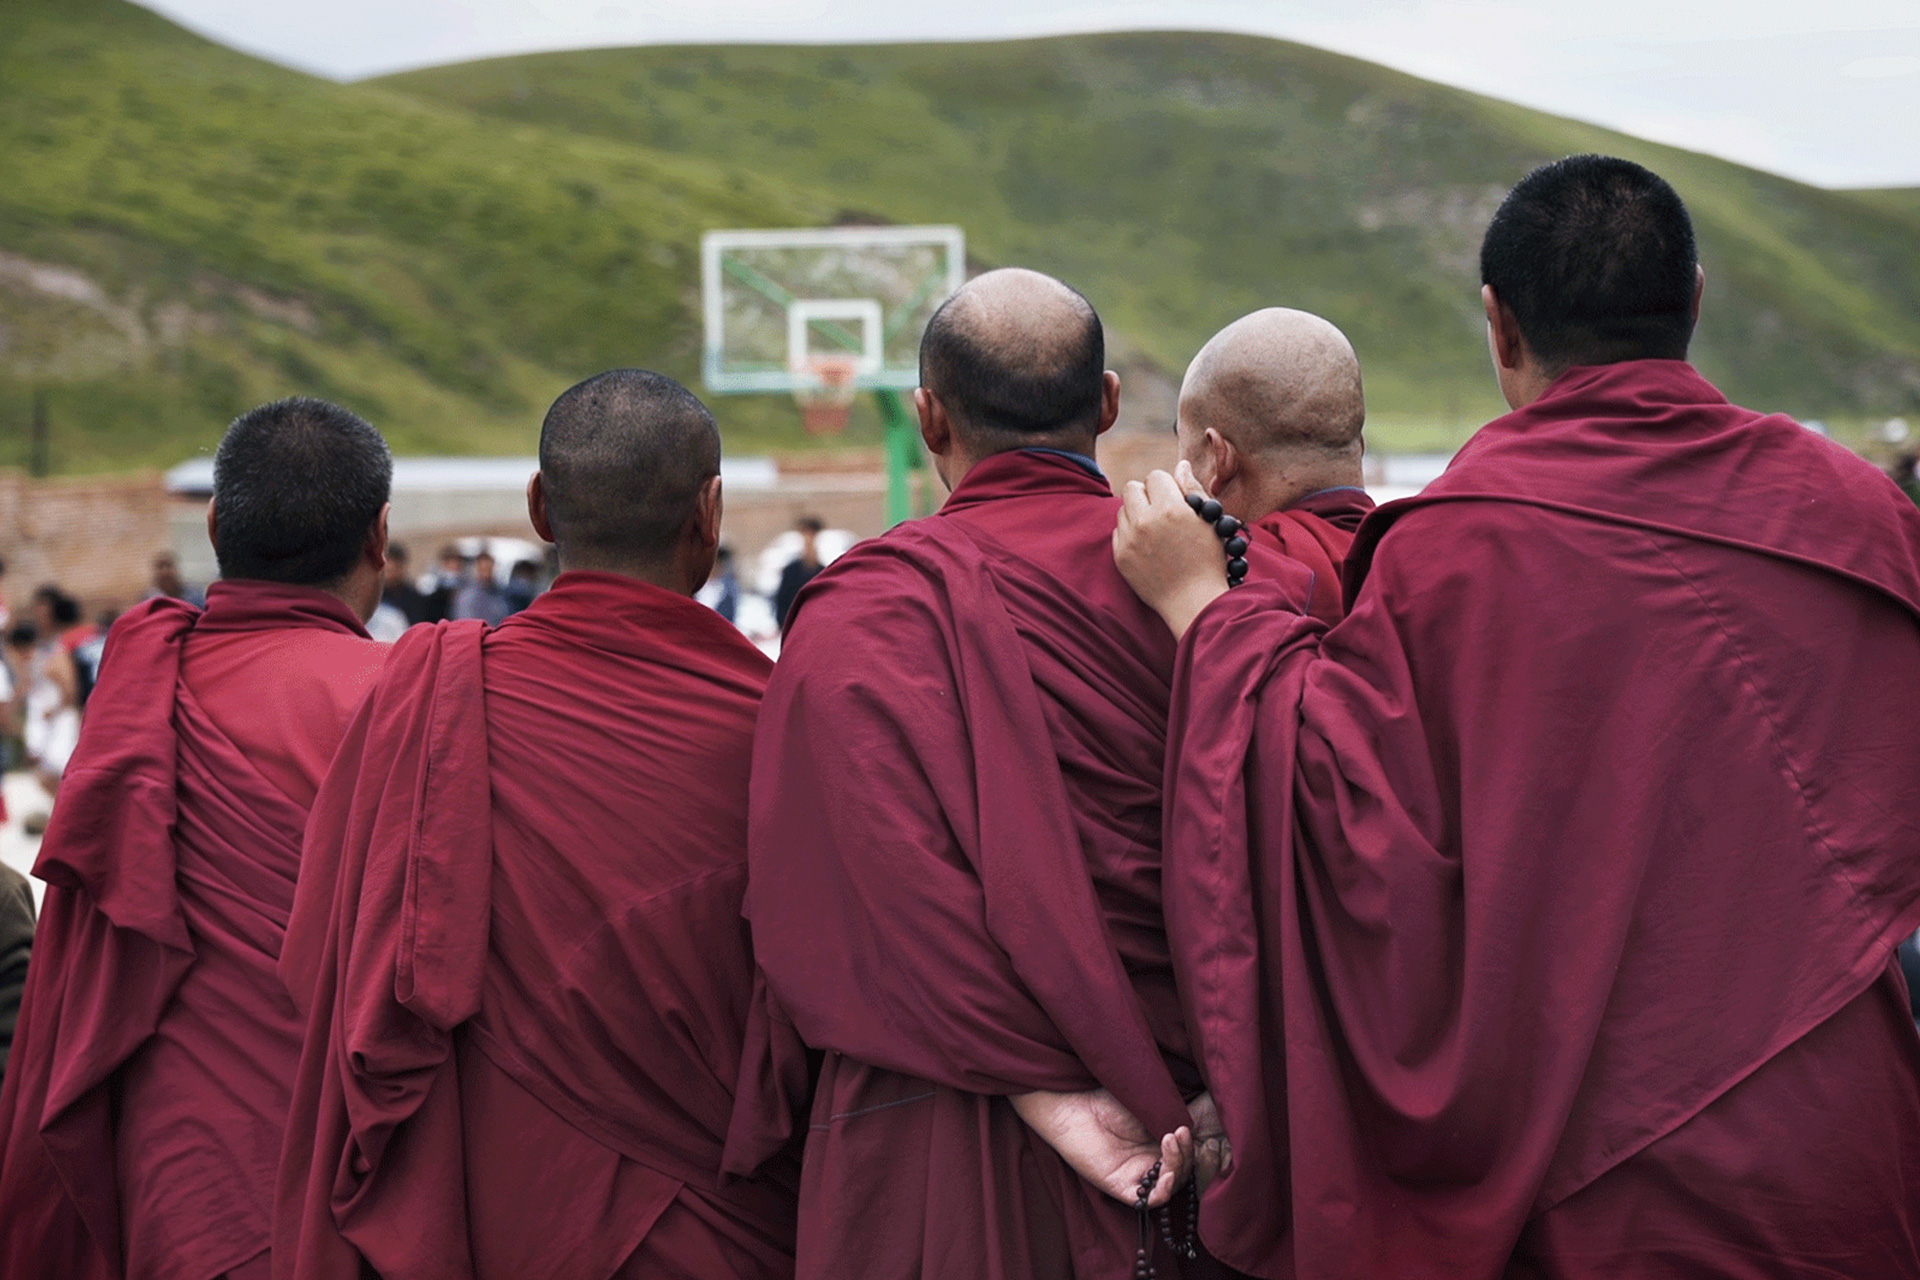 Monks Watching a Basketball game